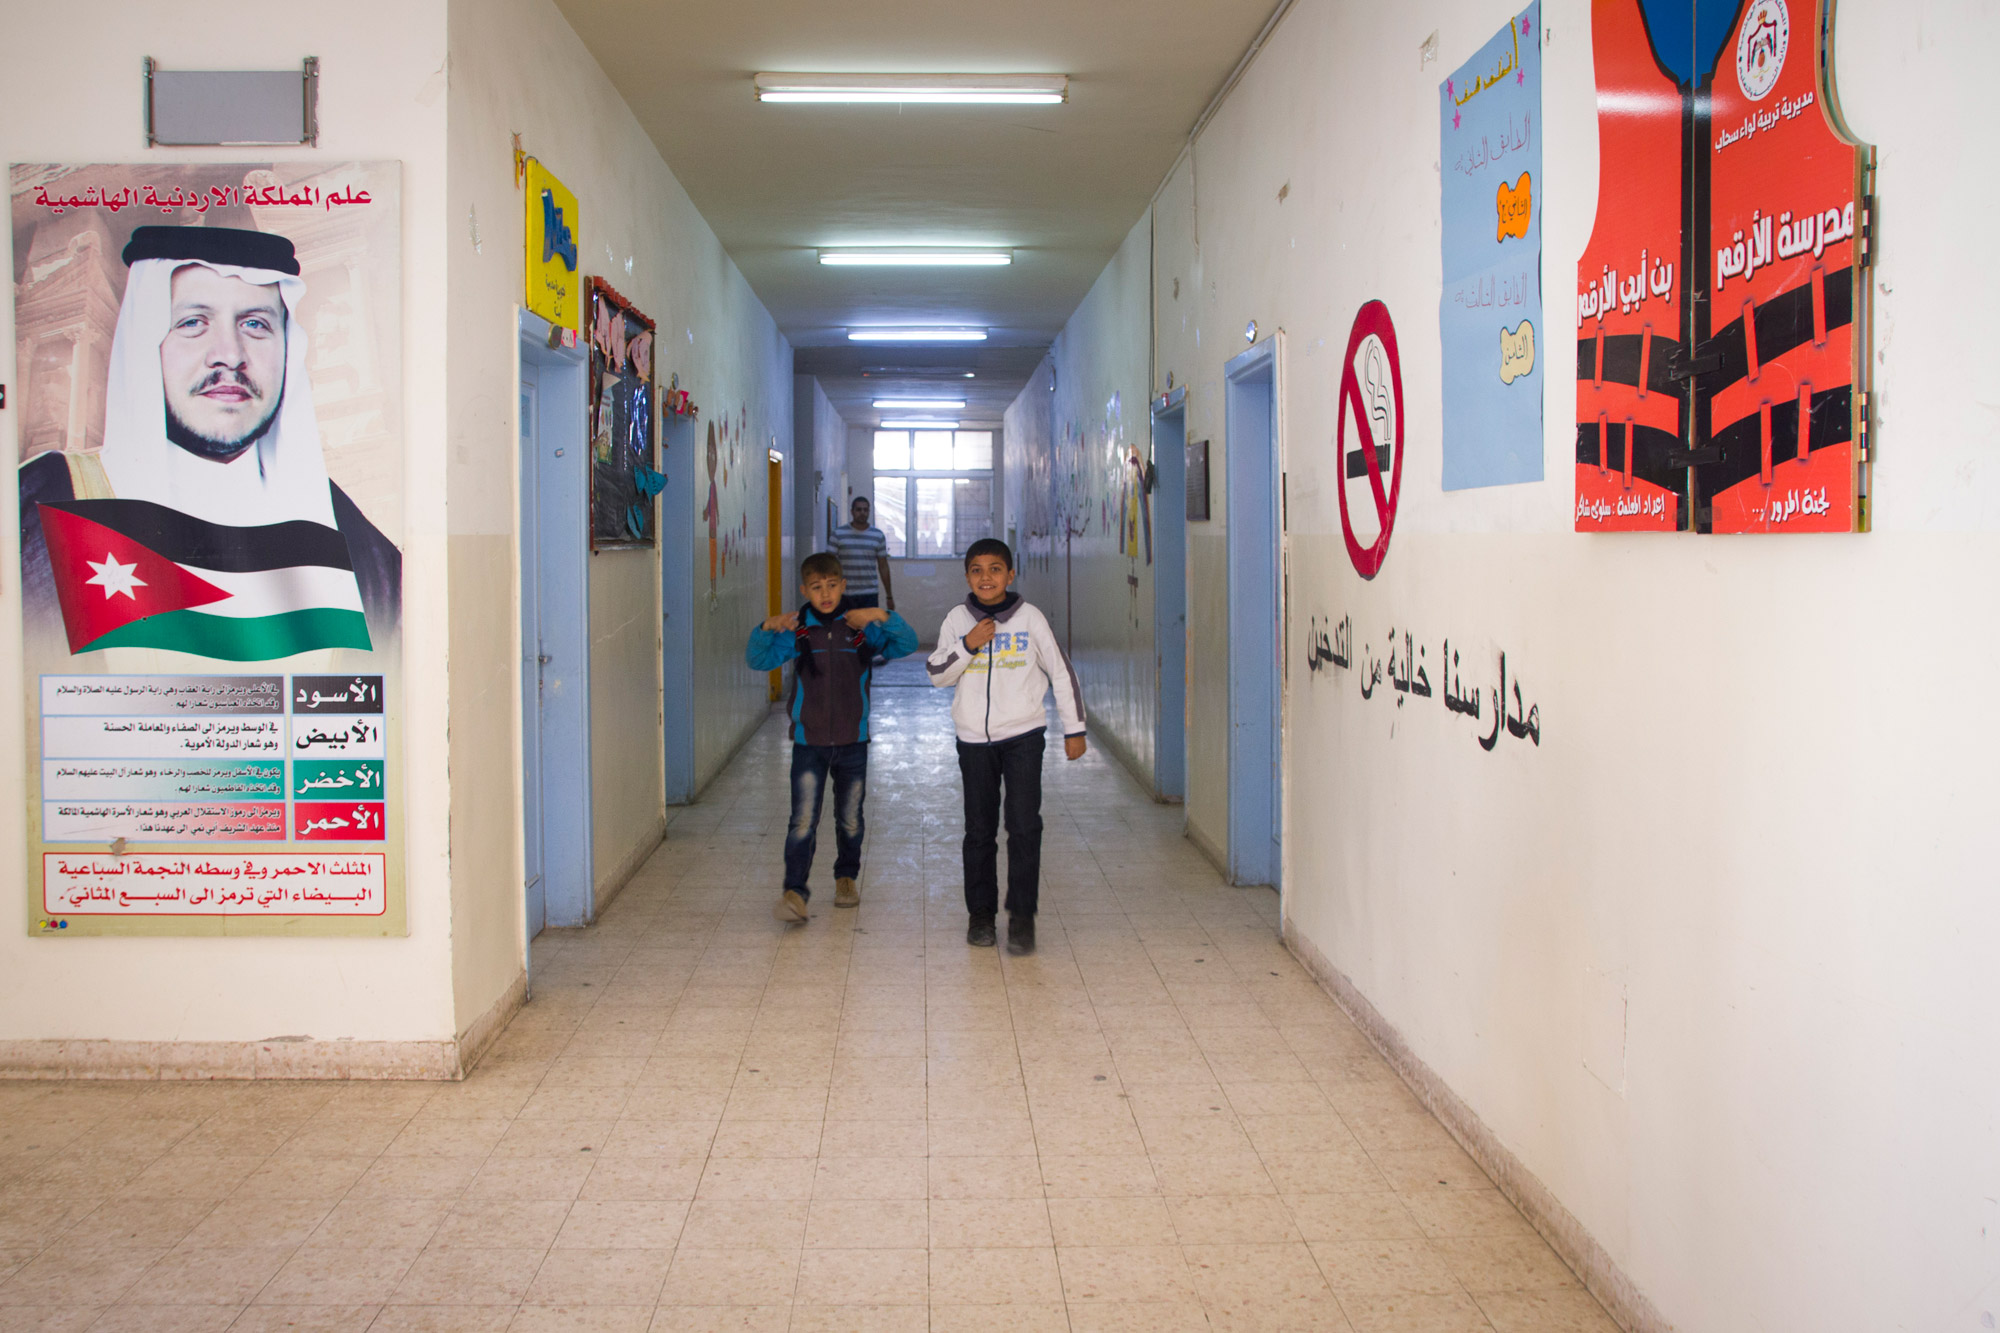 The King of Jordan is omnipresent at this school: a portrait of him is hanging on the hall wall at the entrance.